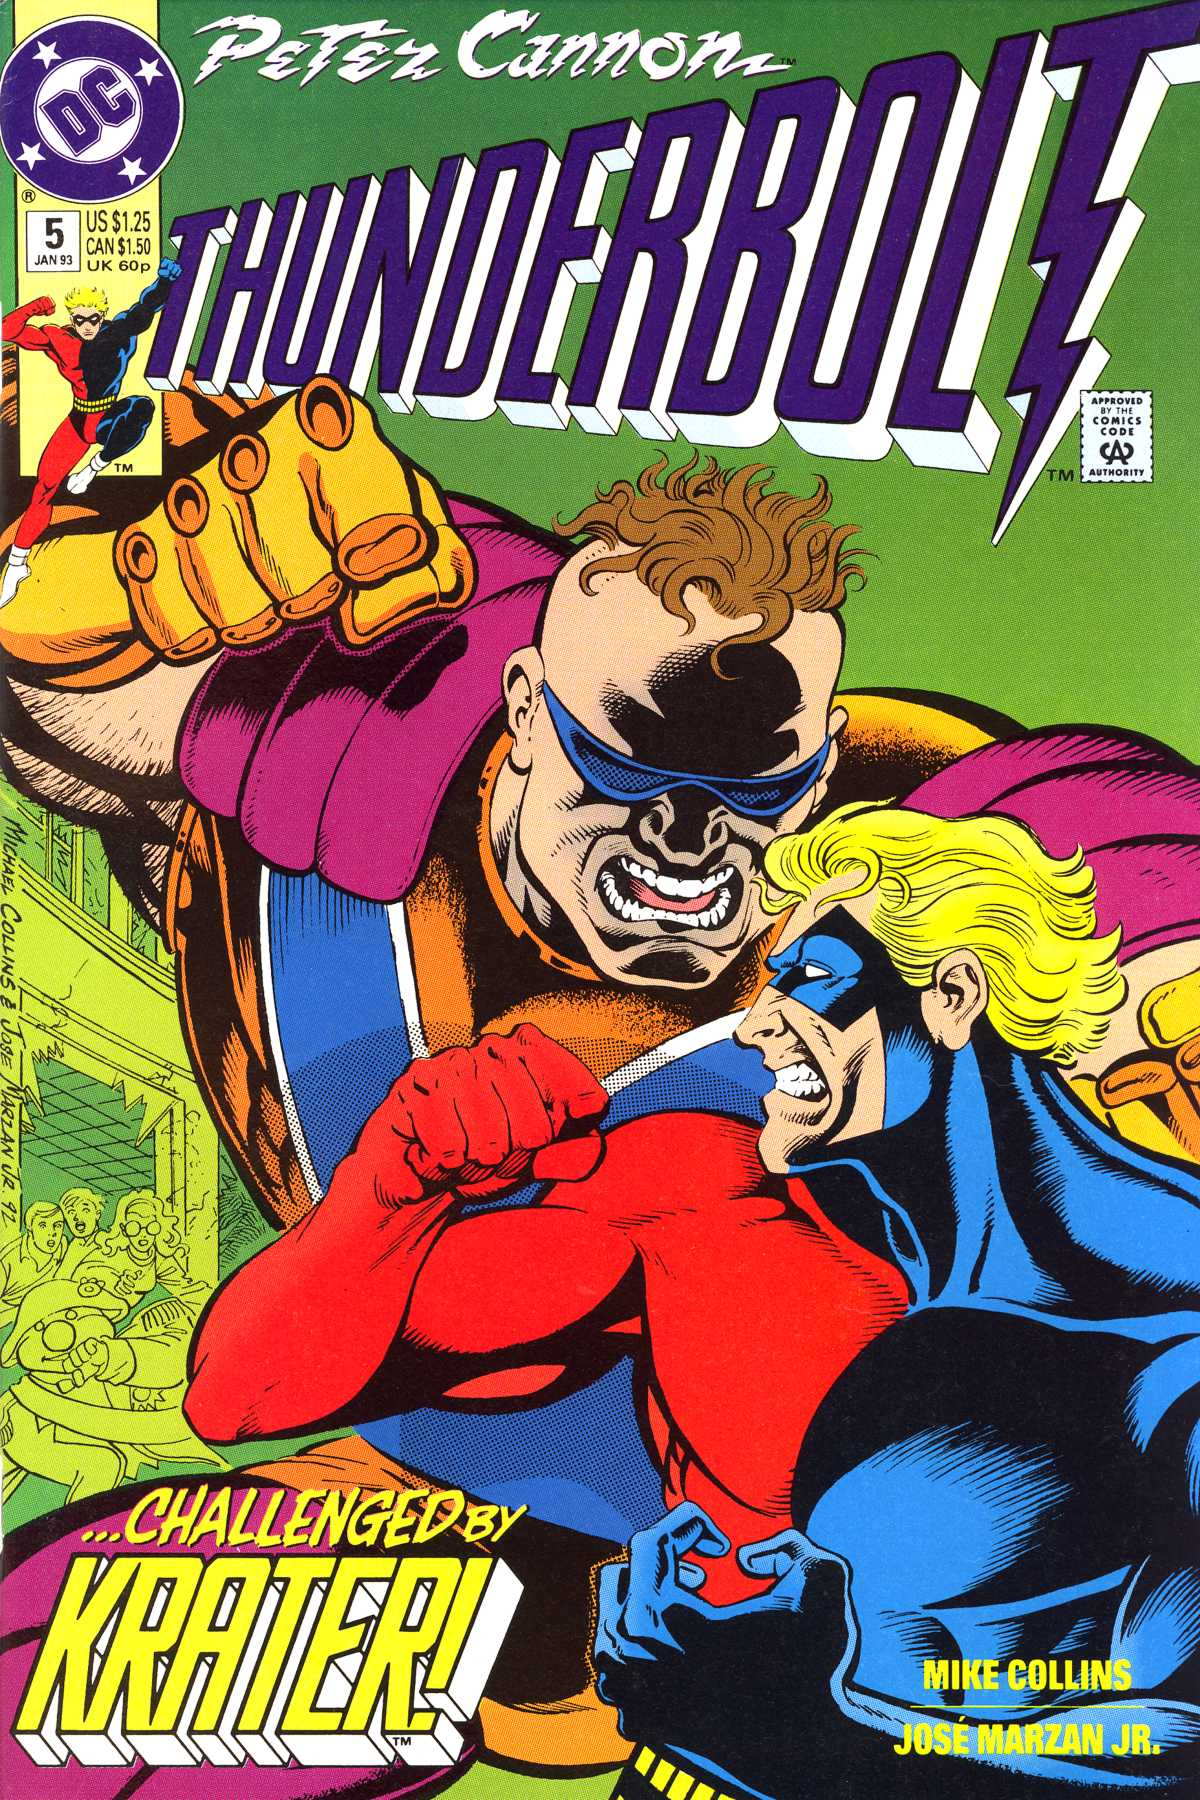 Read online Peter Cannon--Thunderbolt (1992) comic -  Issue #5 - 1